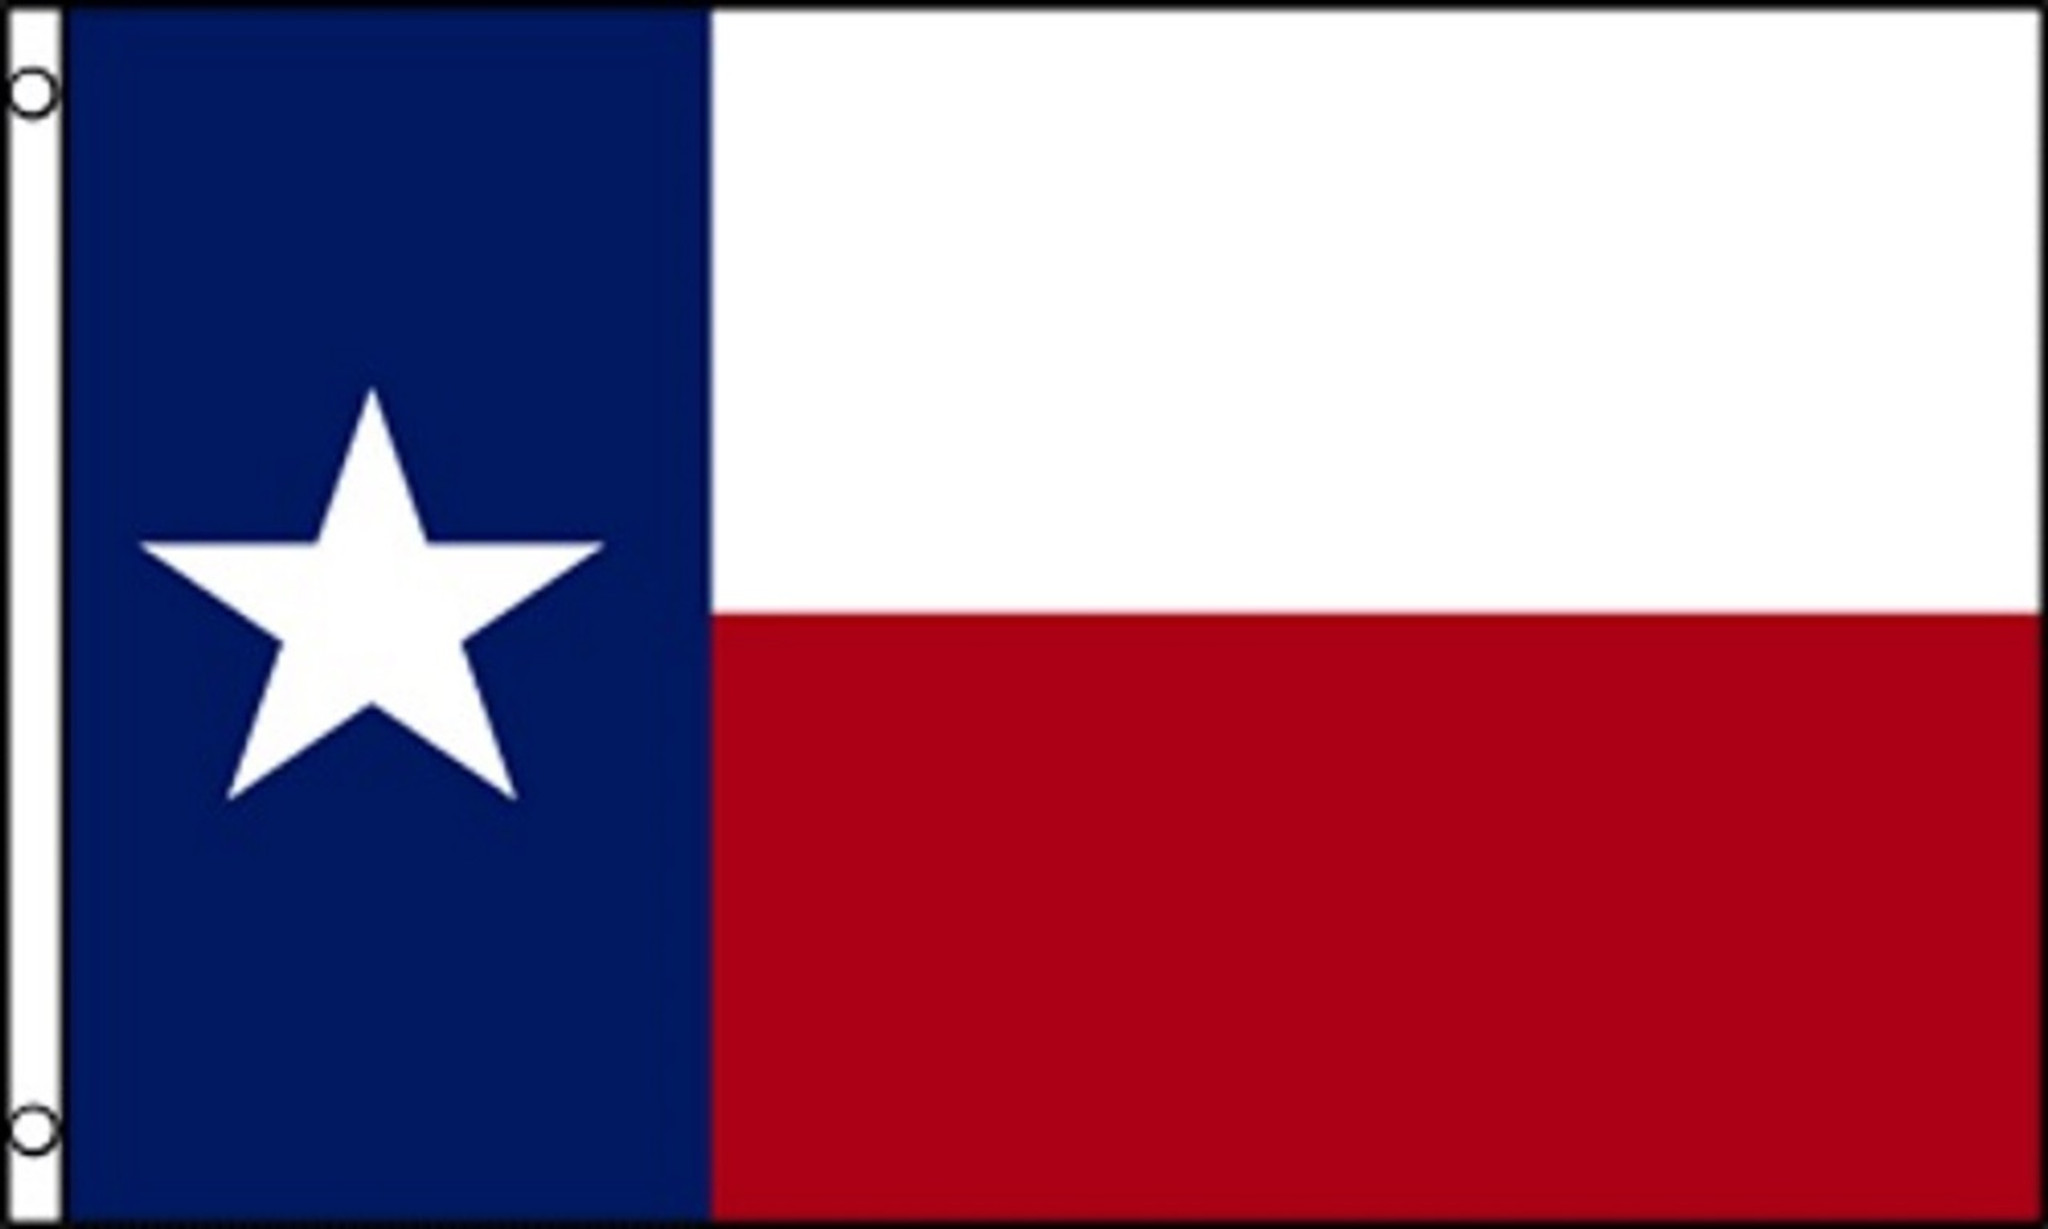 The State Of Texas Republic Of Texas Flag Low Cost